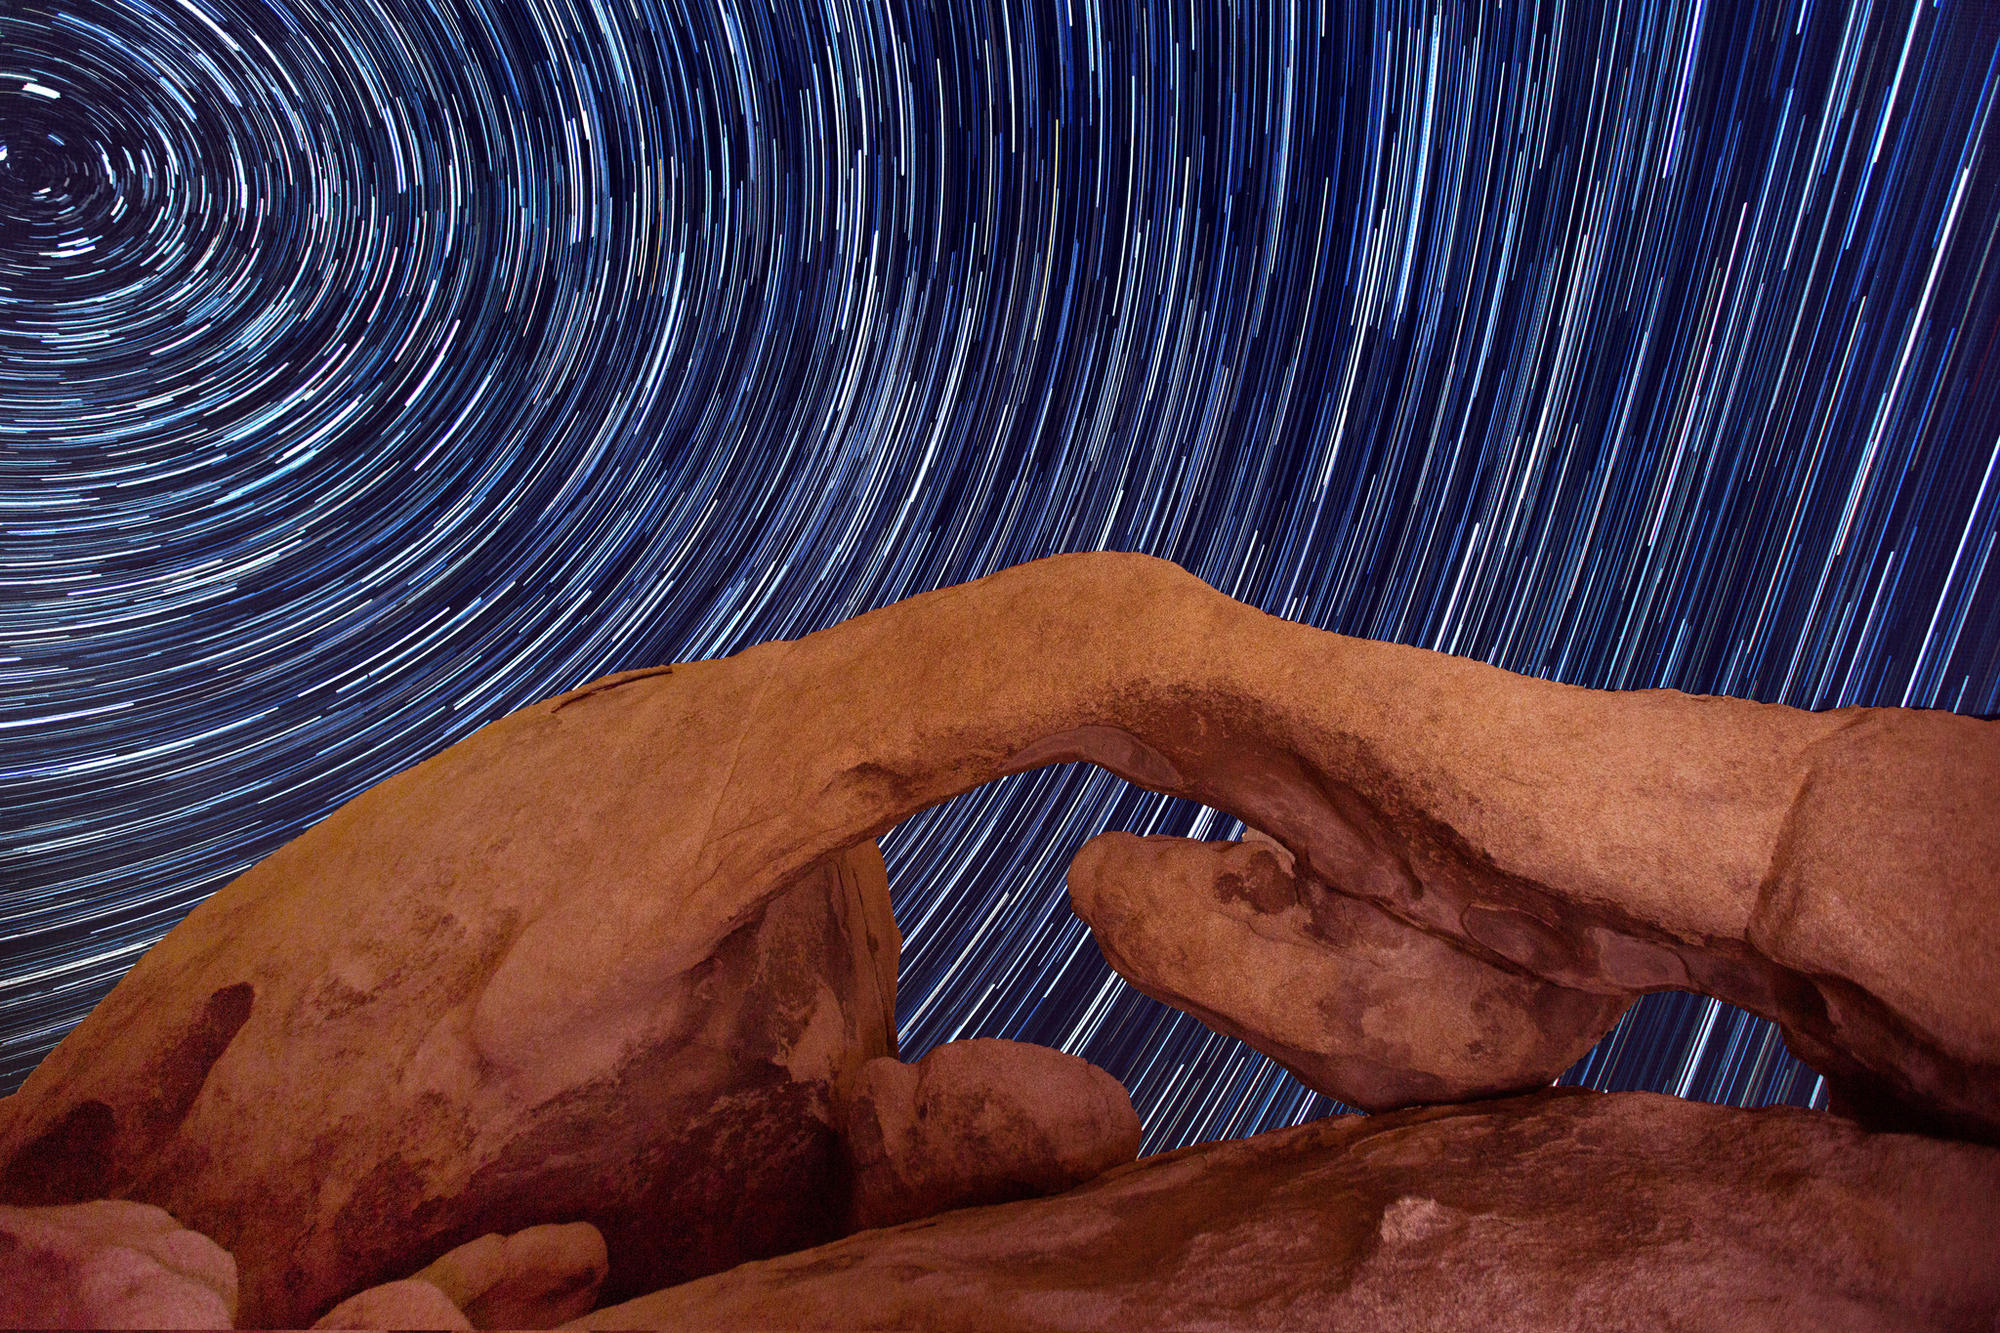 This image of Joshua Tree National Park near the White Tank area is a result of 70 stacked photographs.